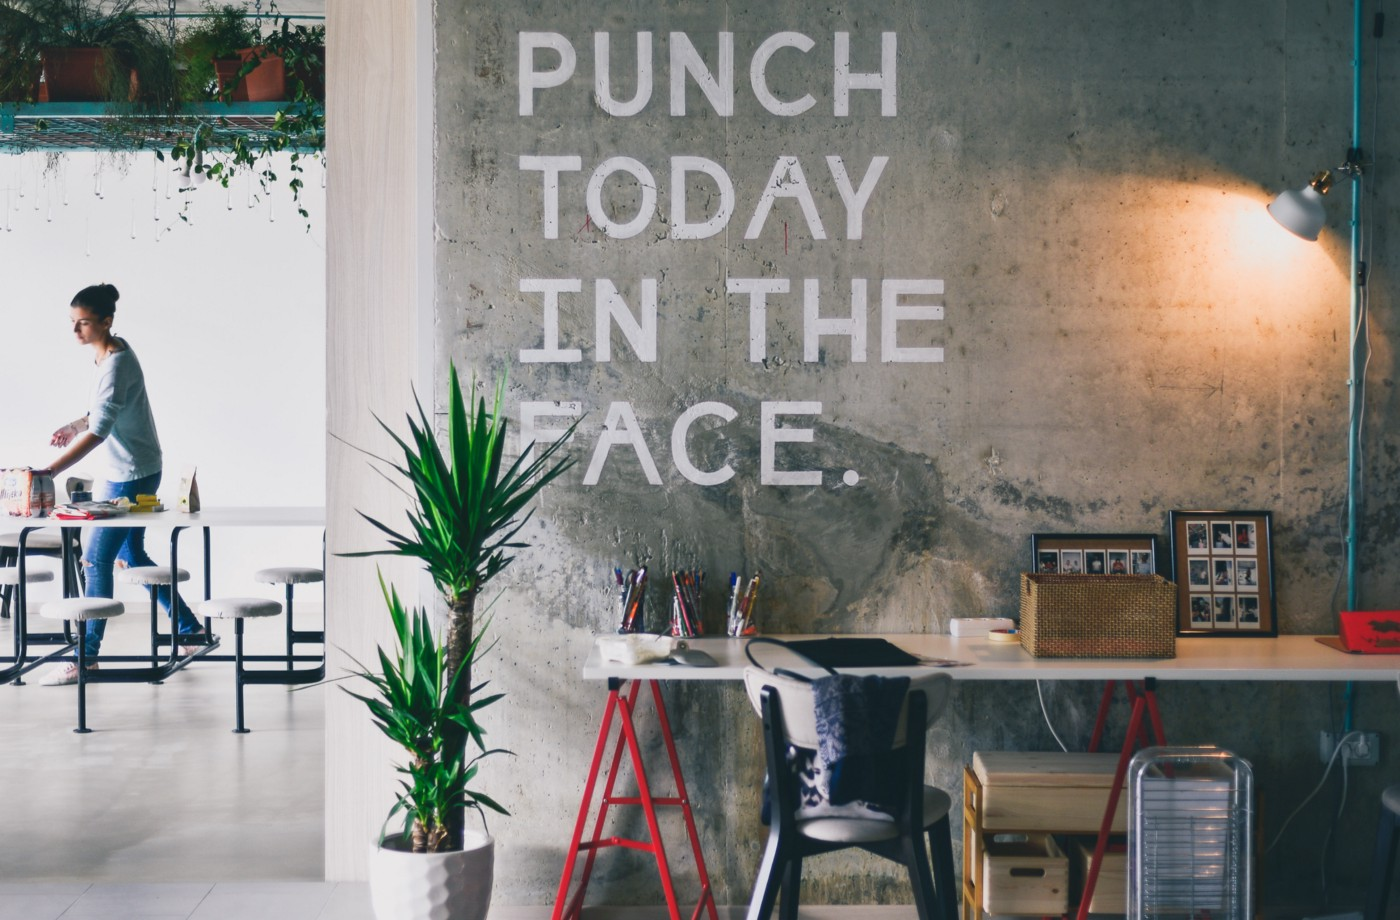 Office environment with the quote 'punch today in the face' written on the wall